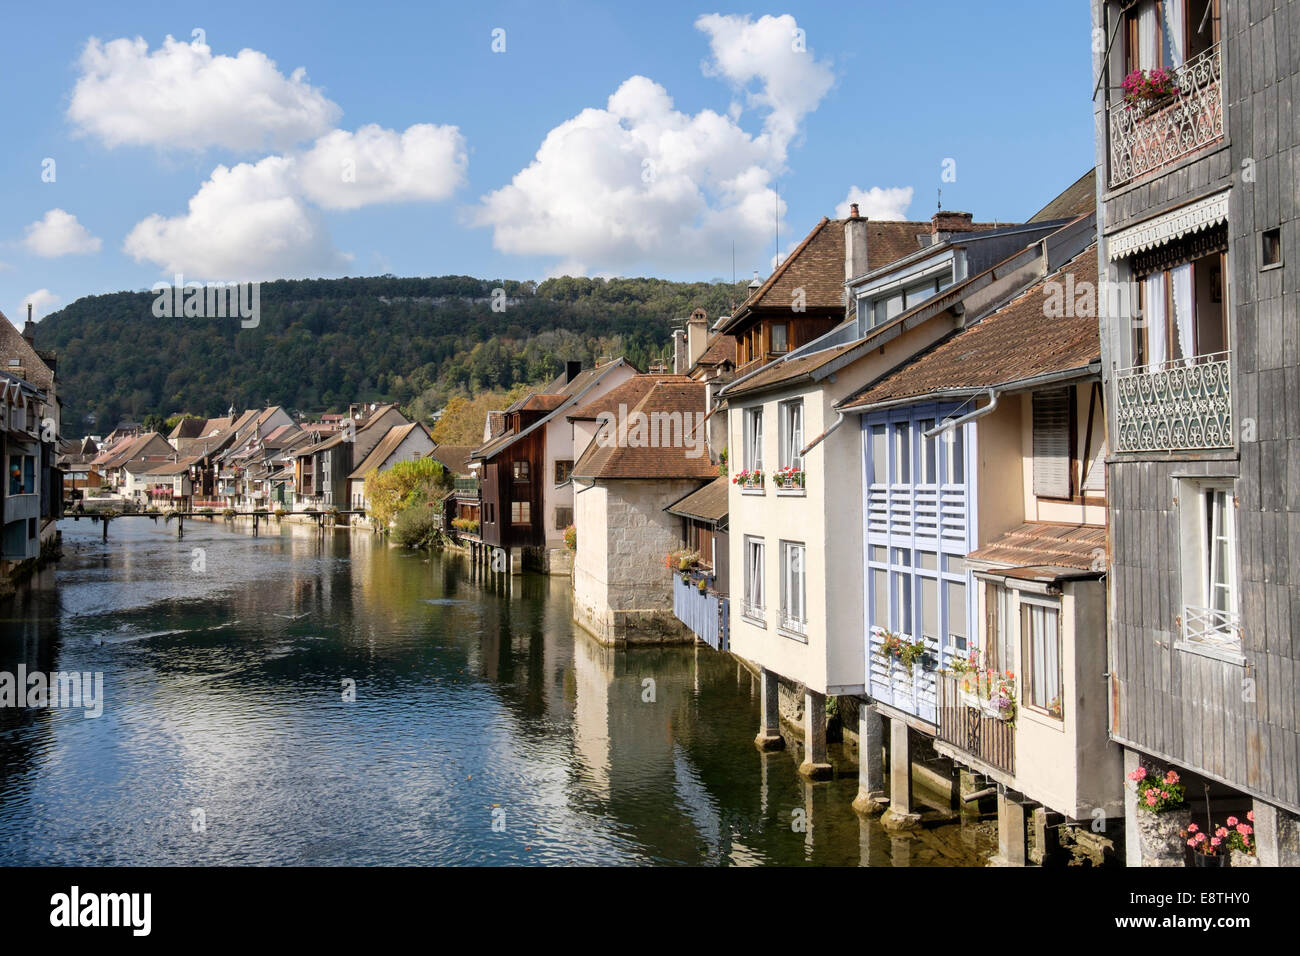 Quaint old houses overhanging the River Loue in Ornans, Doubs, Franche Comte, France, Europe - Stock Image